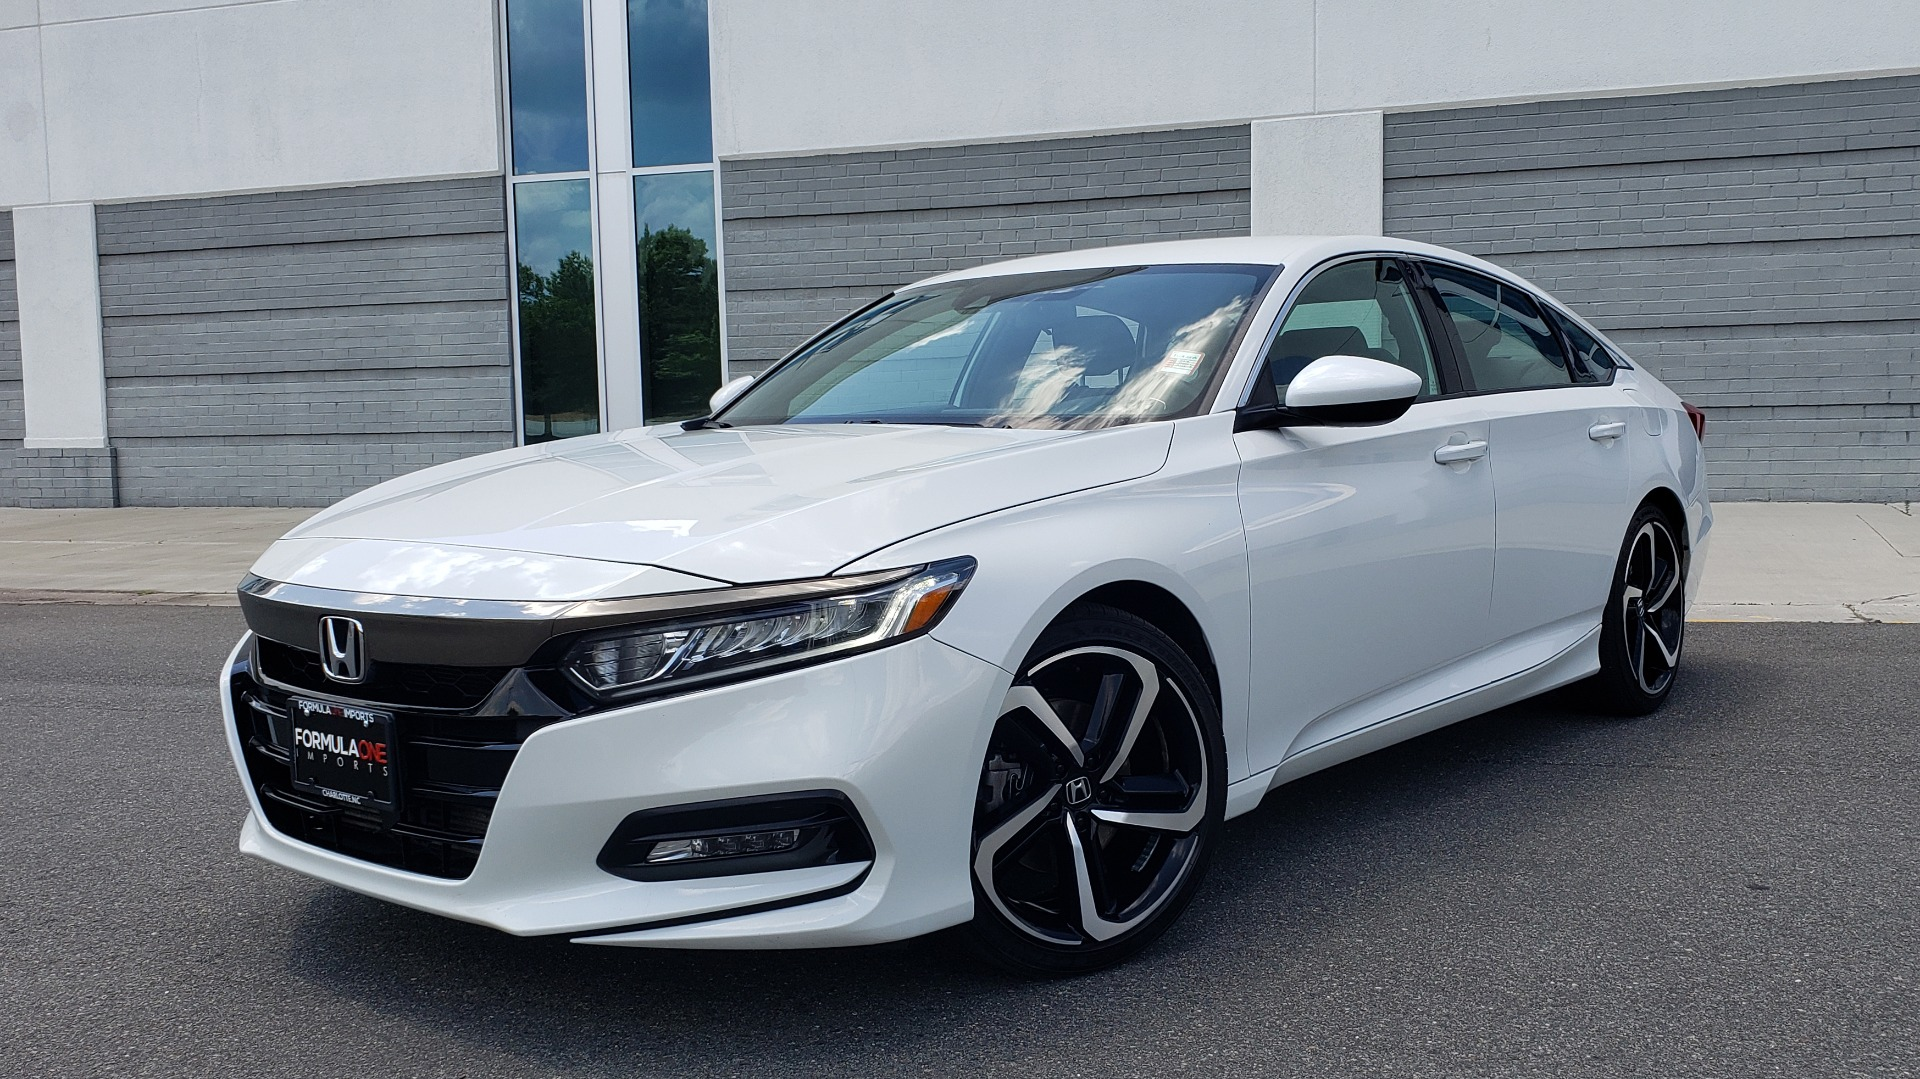 Used 2018 Honda ACCORD SEDAN SPORT 1.5T / CVT TRANS / FWD / 19IN WHEELS for sale $20,995 at Formula Imports in Charlotte NC 28227 1